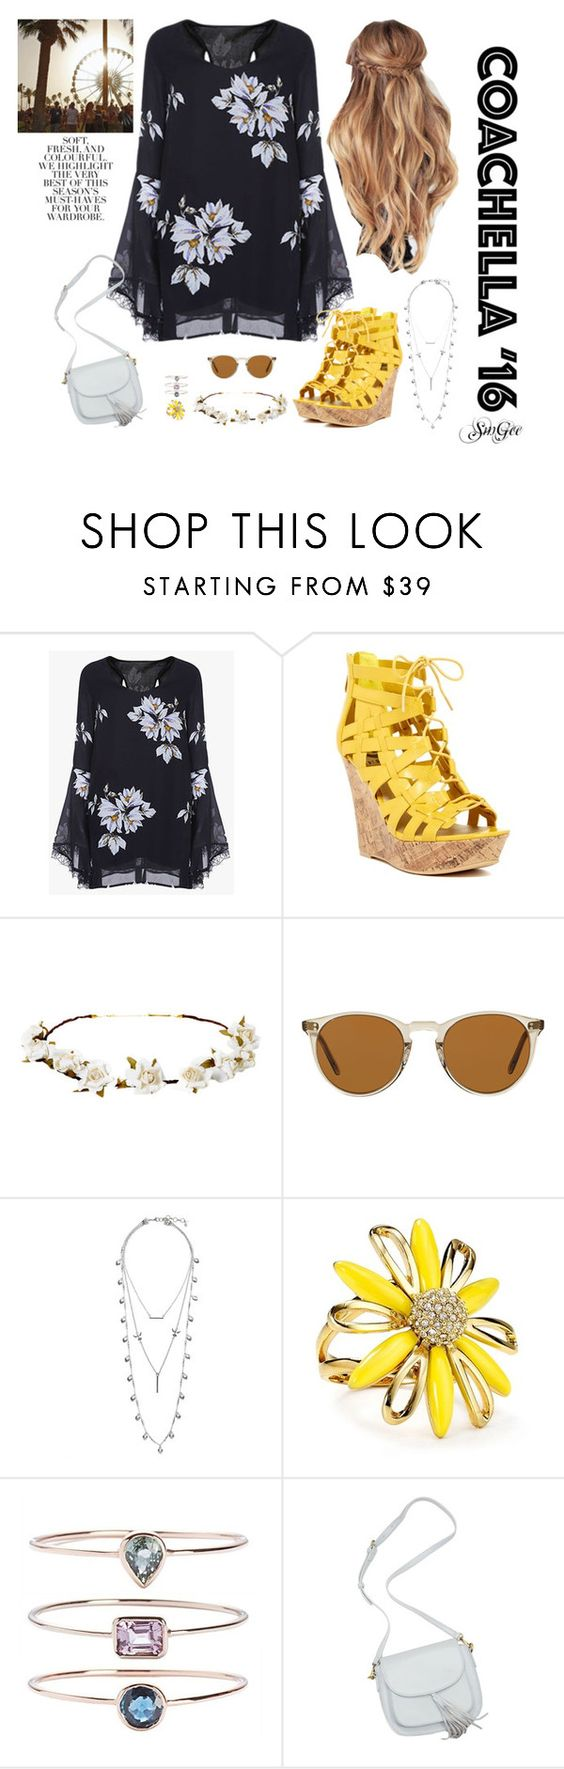 """Coachella Inspired by SmGee"" by smgee ❤ liked on Polyvore featuring G by Guess, Cult Gaia, Oliver Peoples, Lucky Brand, Kate Spade, 19Fifth, Été Swim and Folio"